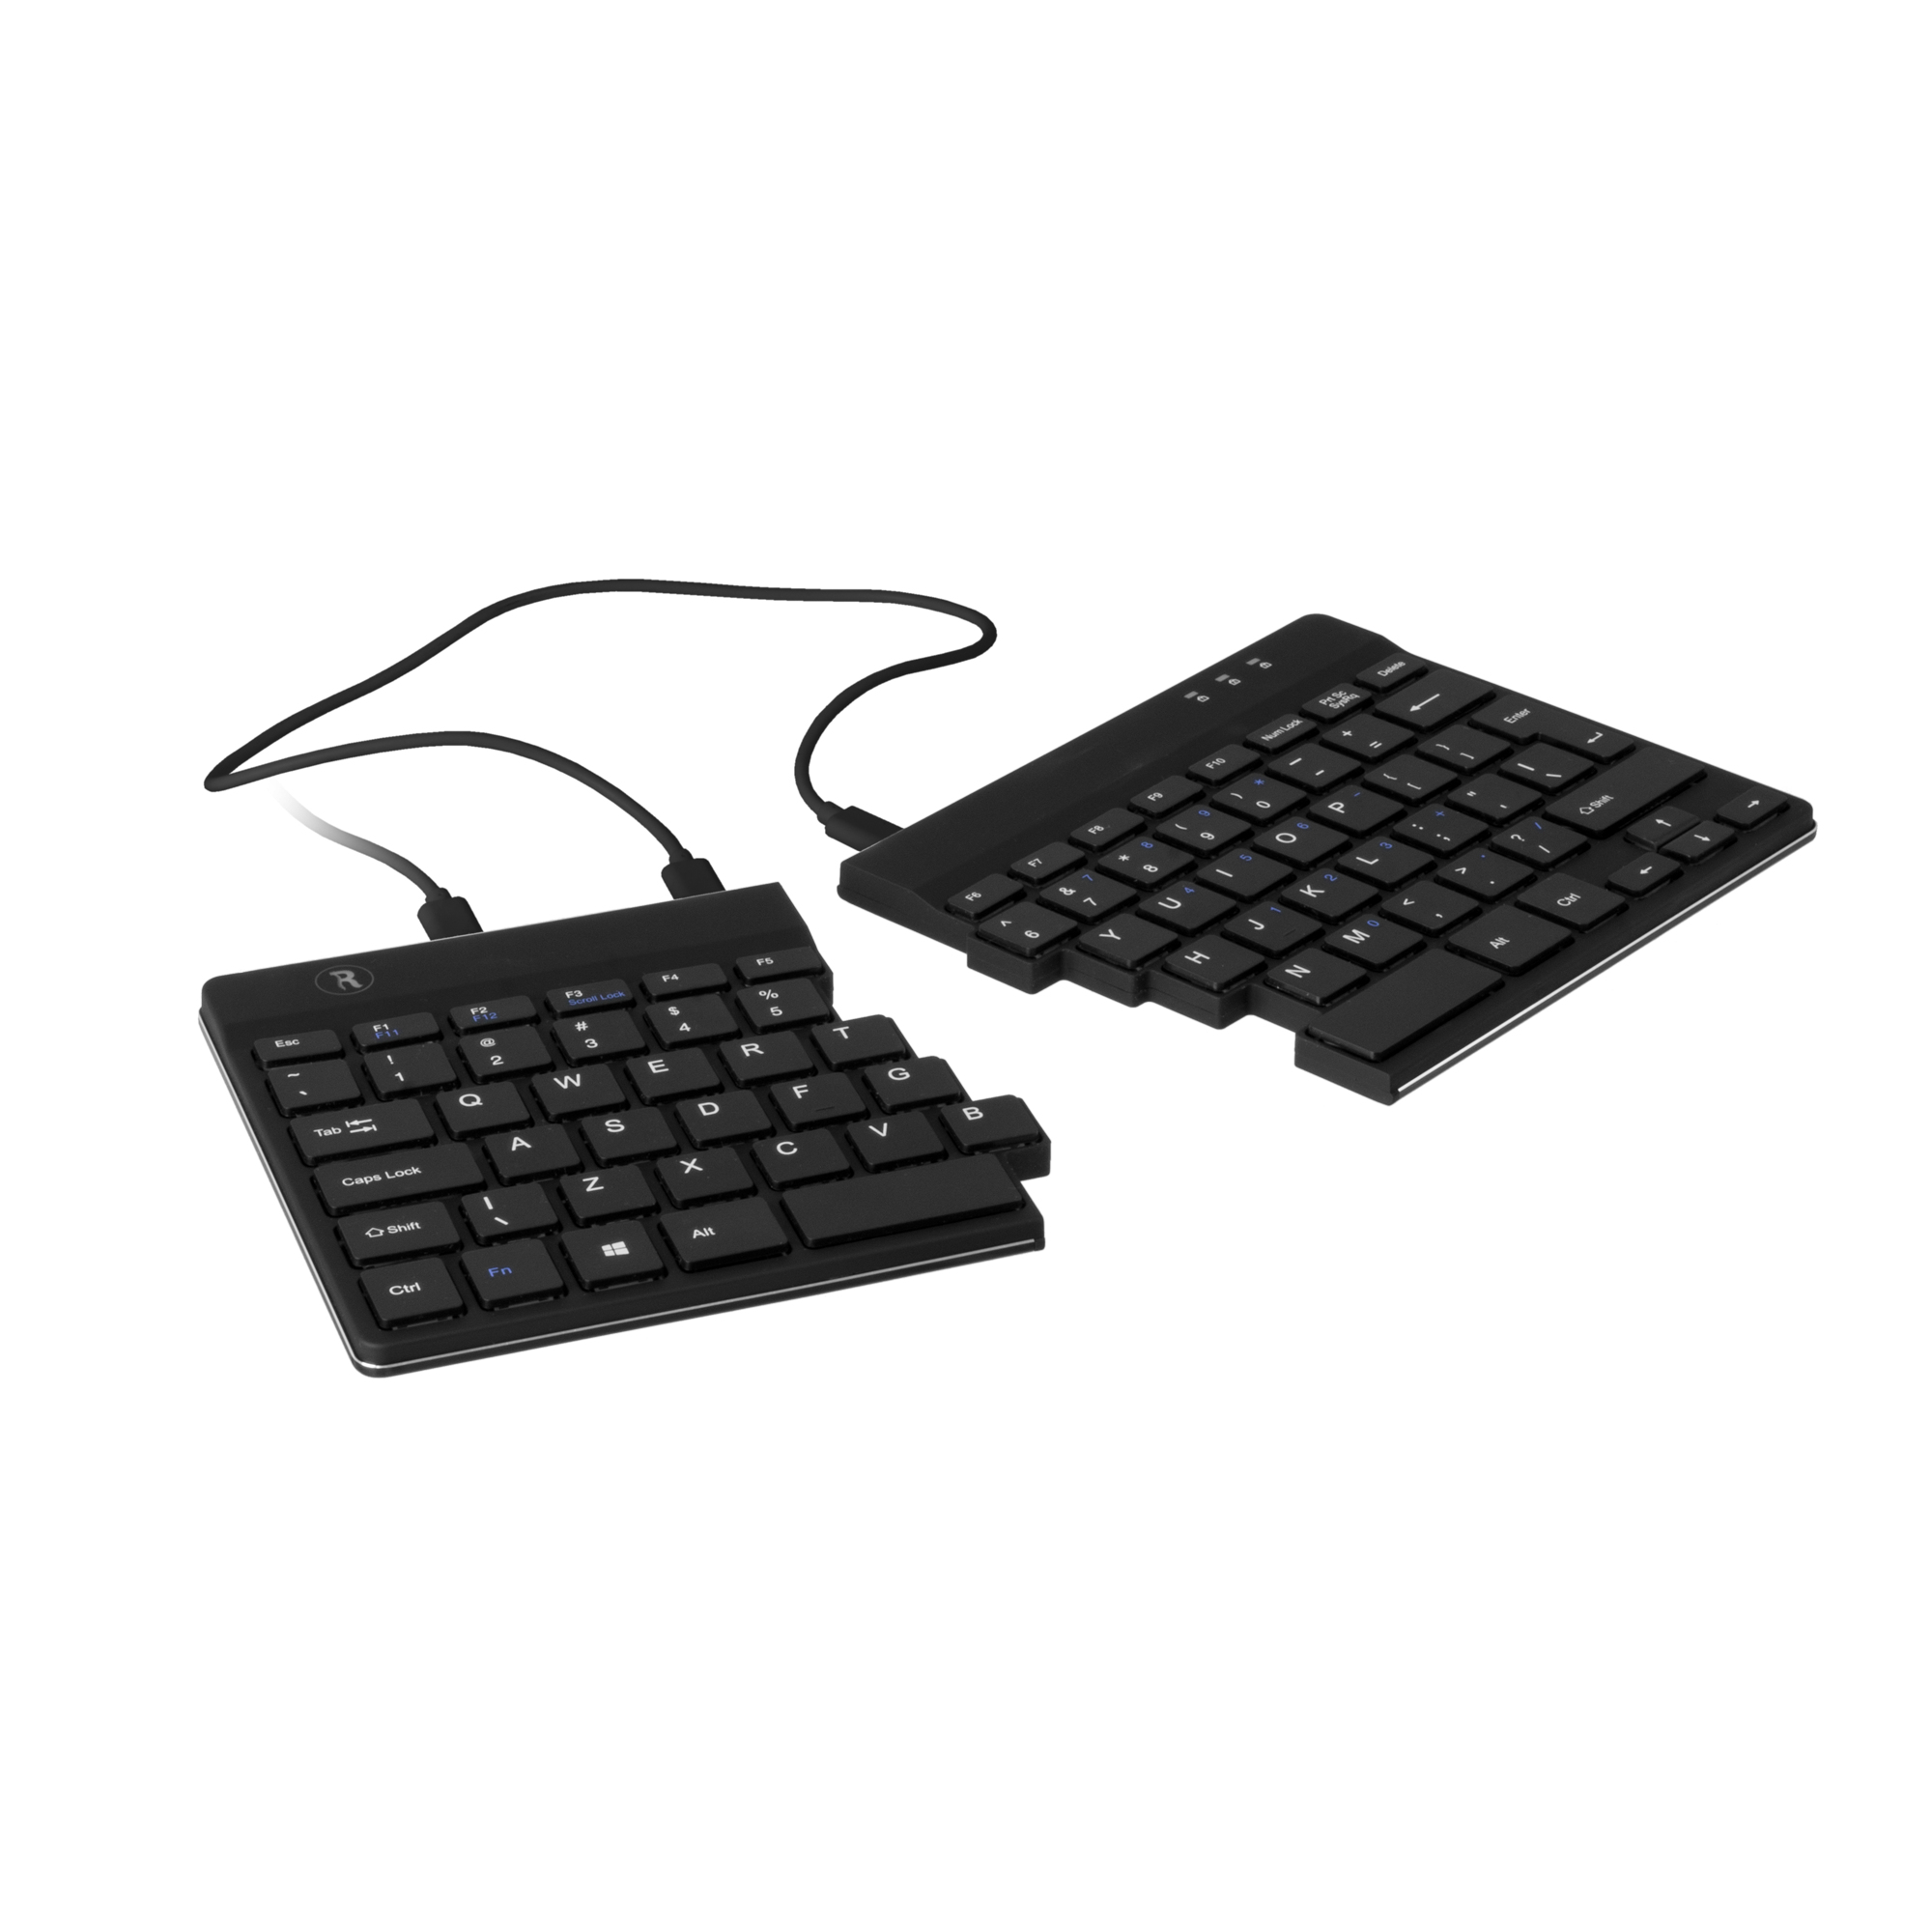 R-GO TOOLS RGOSP-DEWIBL SPLIT ERGONOMIC KEYBOARD, QWERTZ (DE), BLACK, WIRED